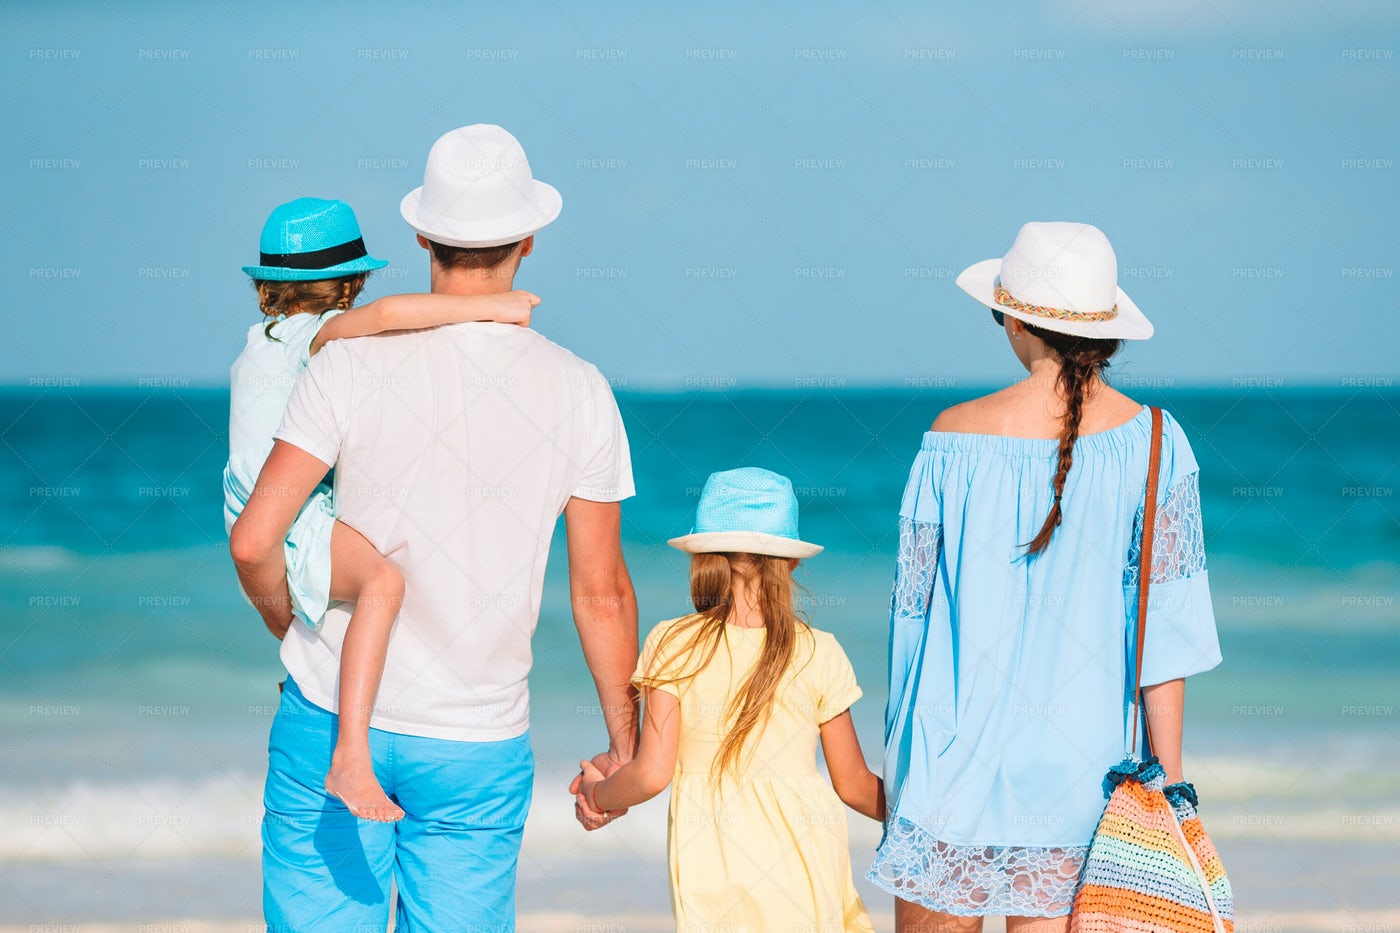 Family Hold Hands On Shore: Stock Photos